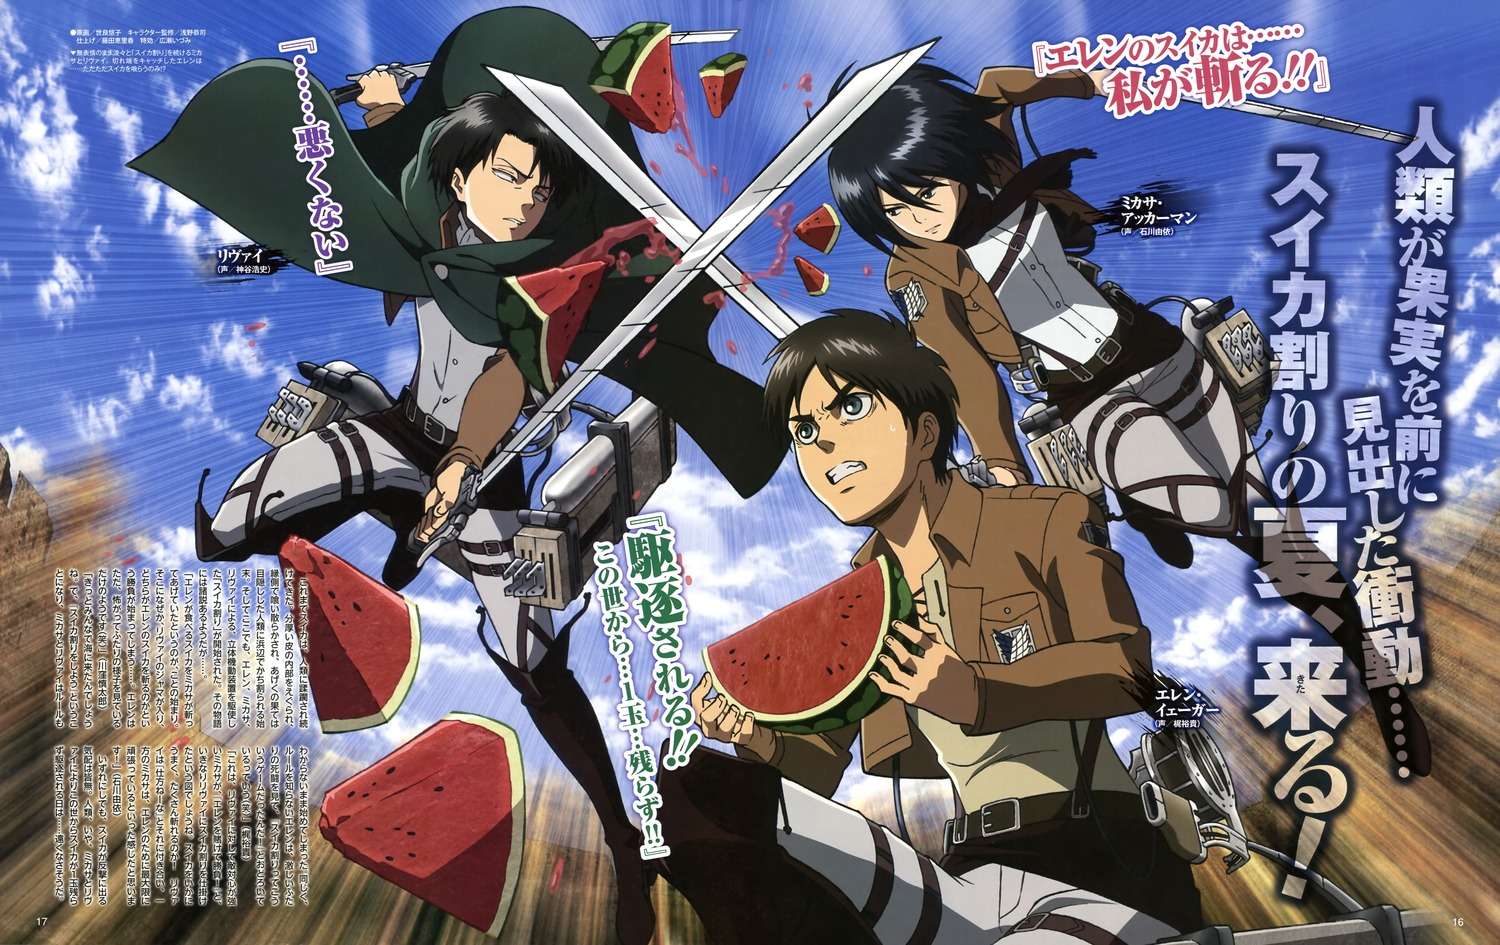 Top 20 Anime You Would Want to Recommend to Others haruhichan.com attack on titan